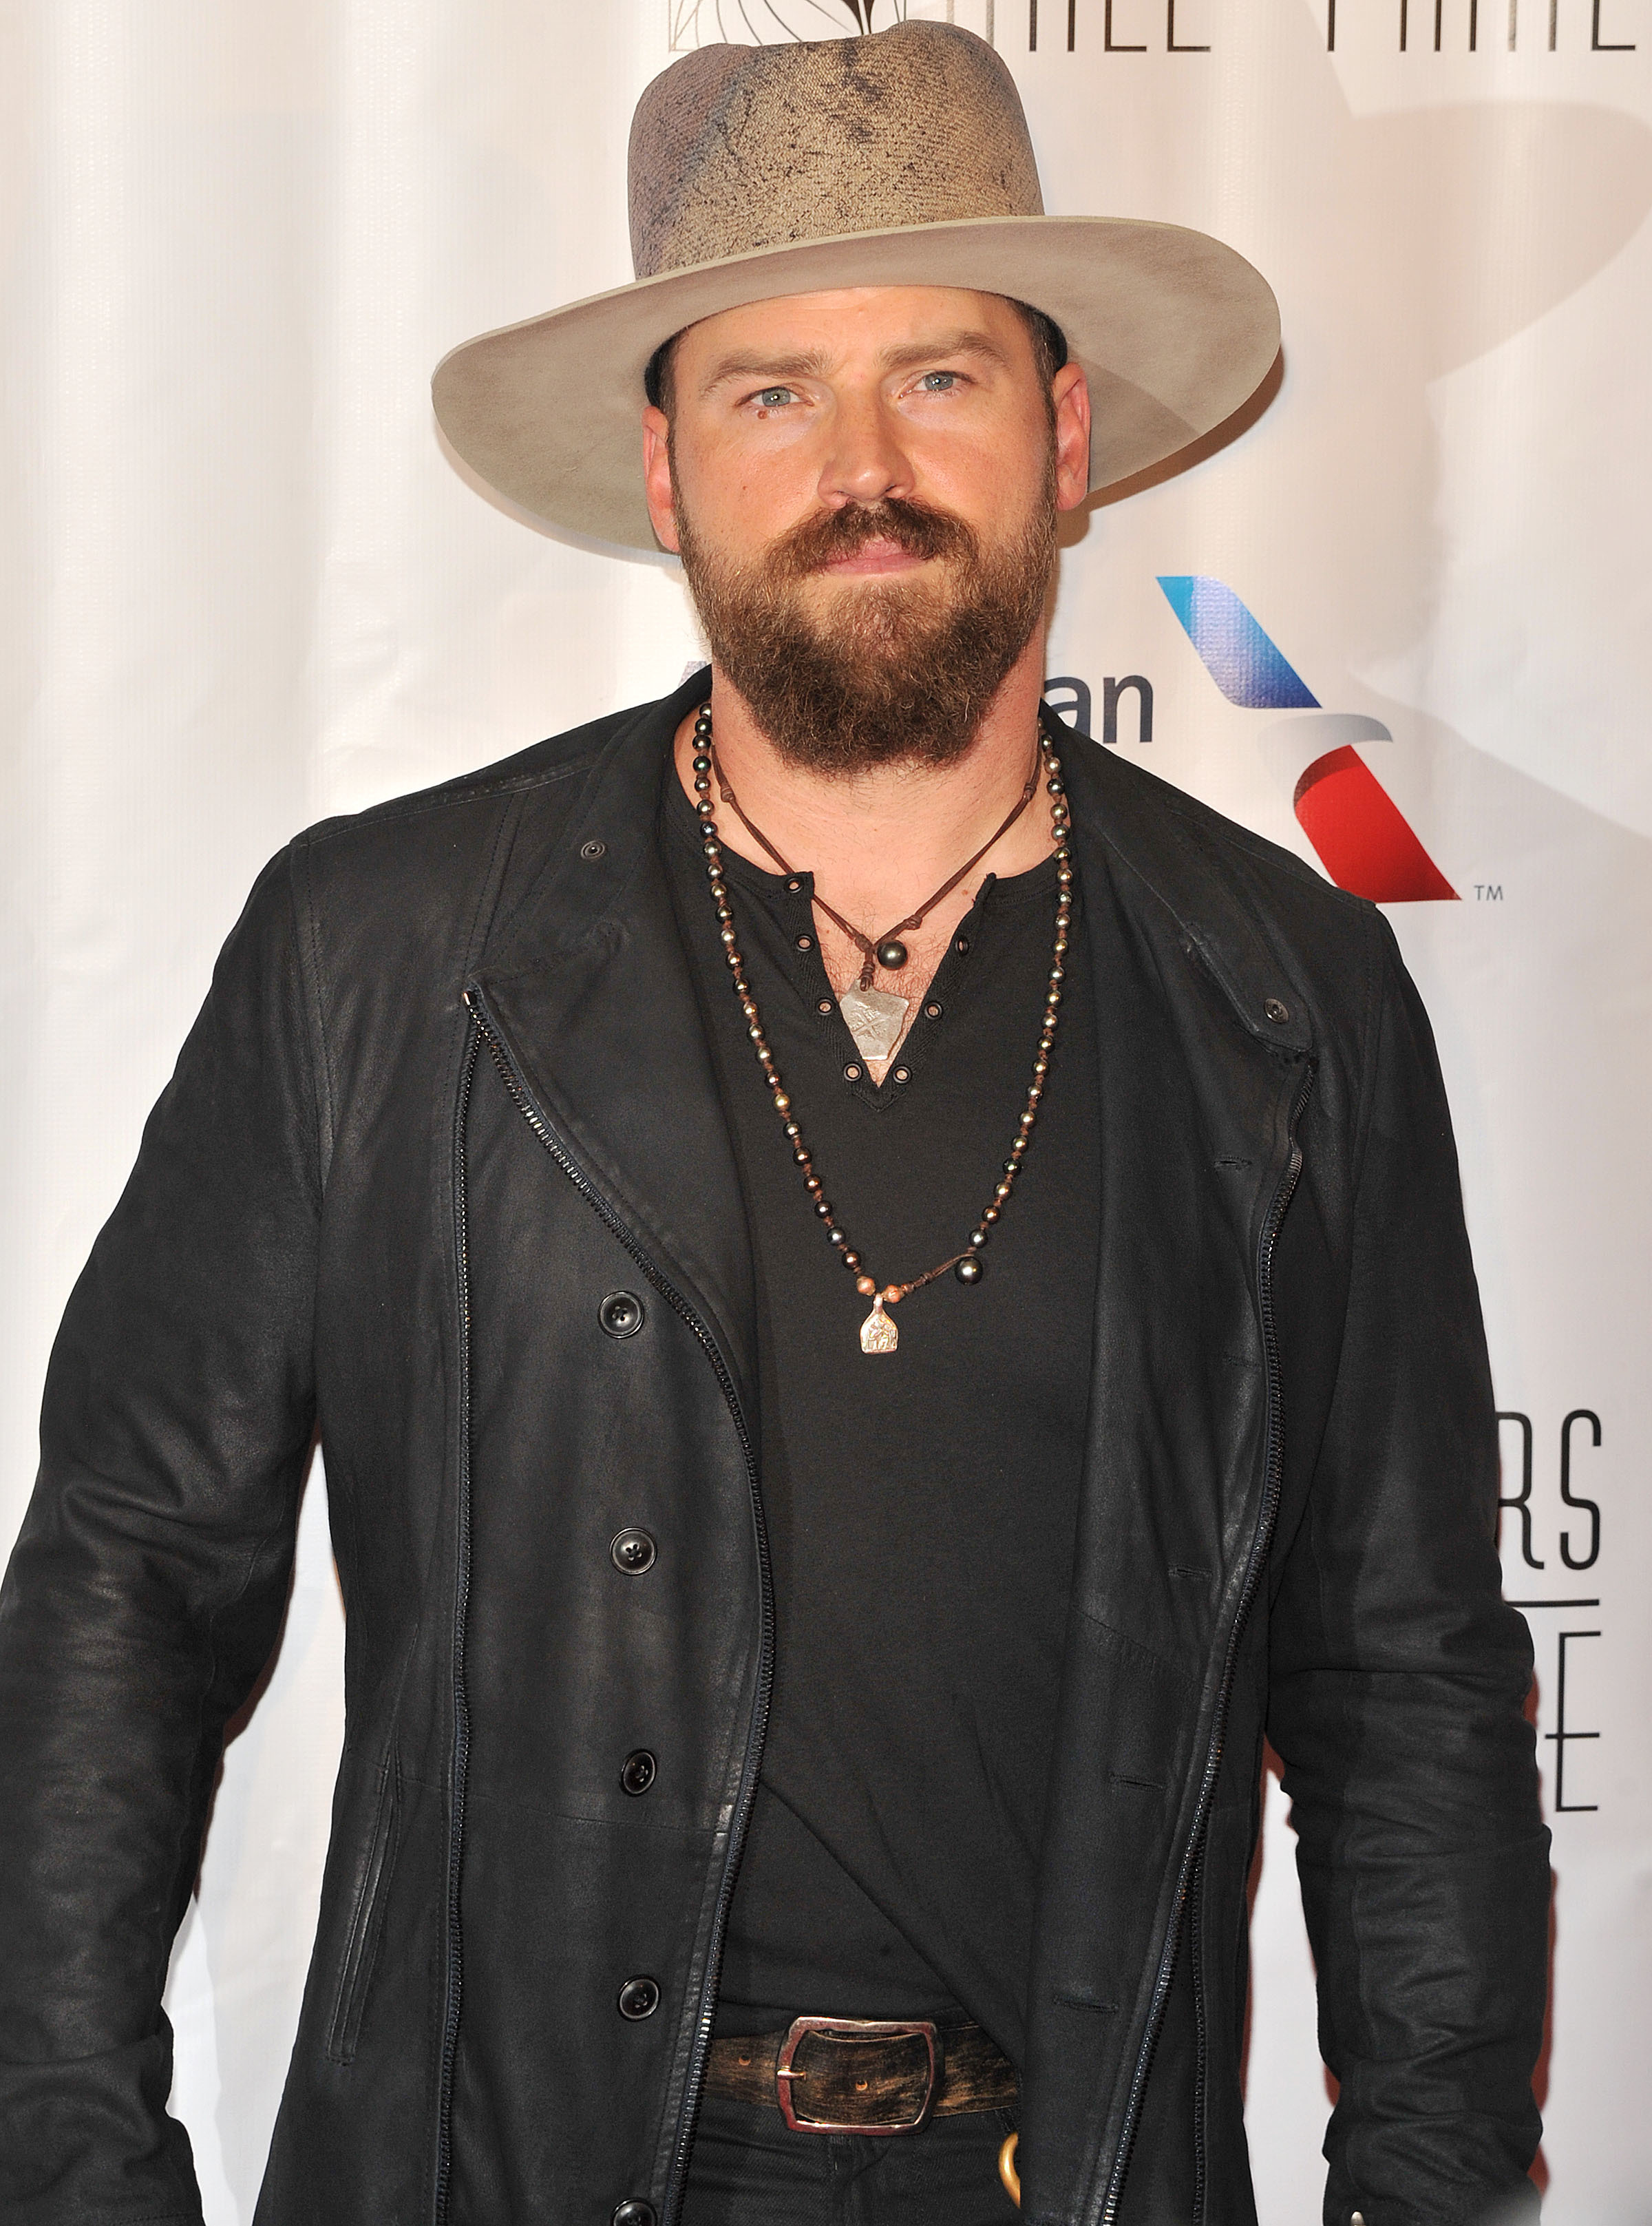 Zac Brown performs at the Songwriters Hall of Fame 46th Annual Induction and Awards in New York on June 18, 2015.